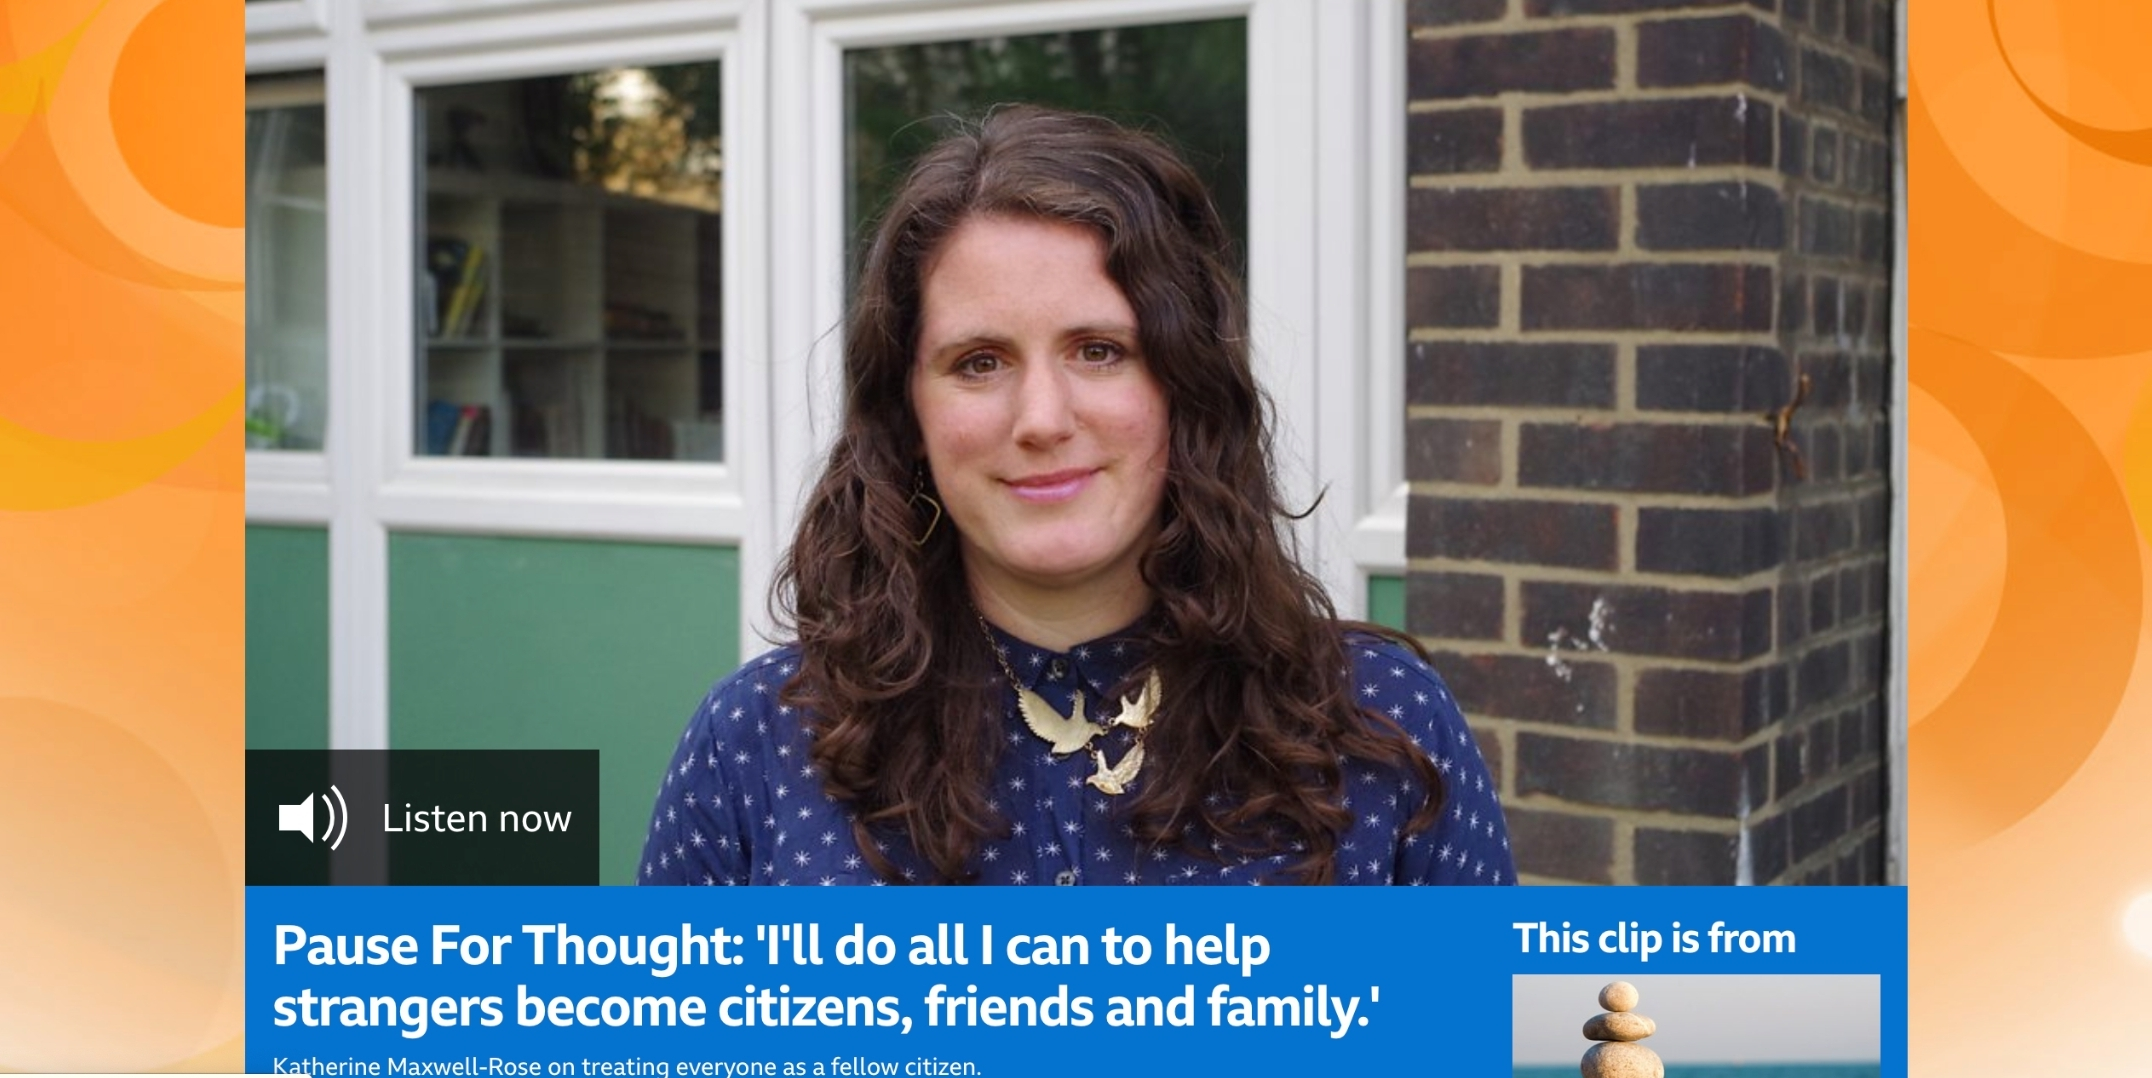 BBC- Pause For Thought Pause For Thought: 'I'll do all I can to help strangers become citizens, friends and family.' 2 mins   By Katherine Maxwell Rose